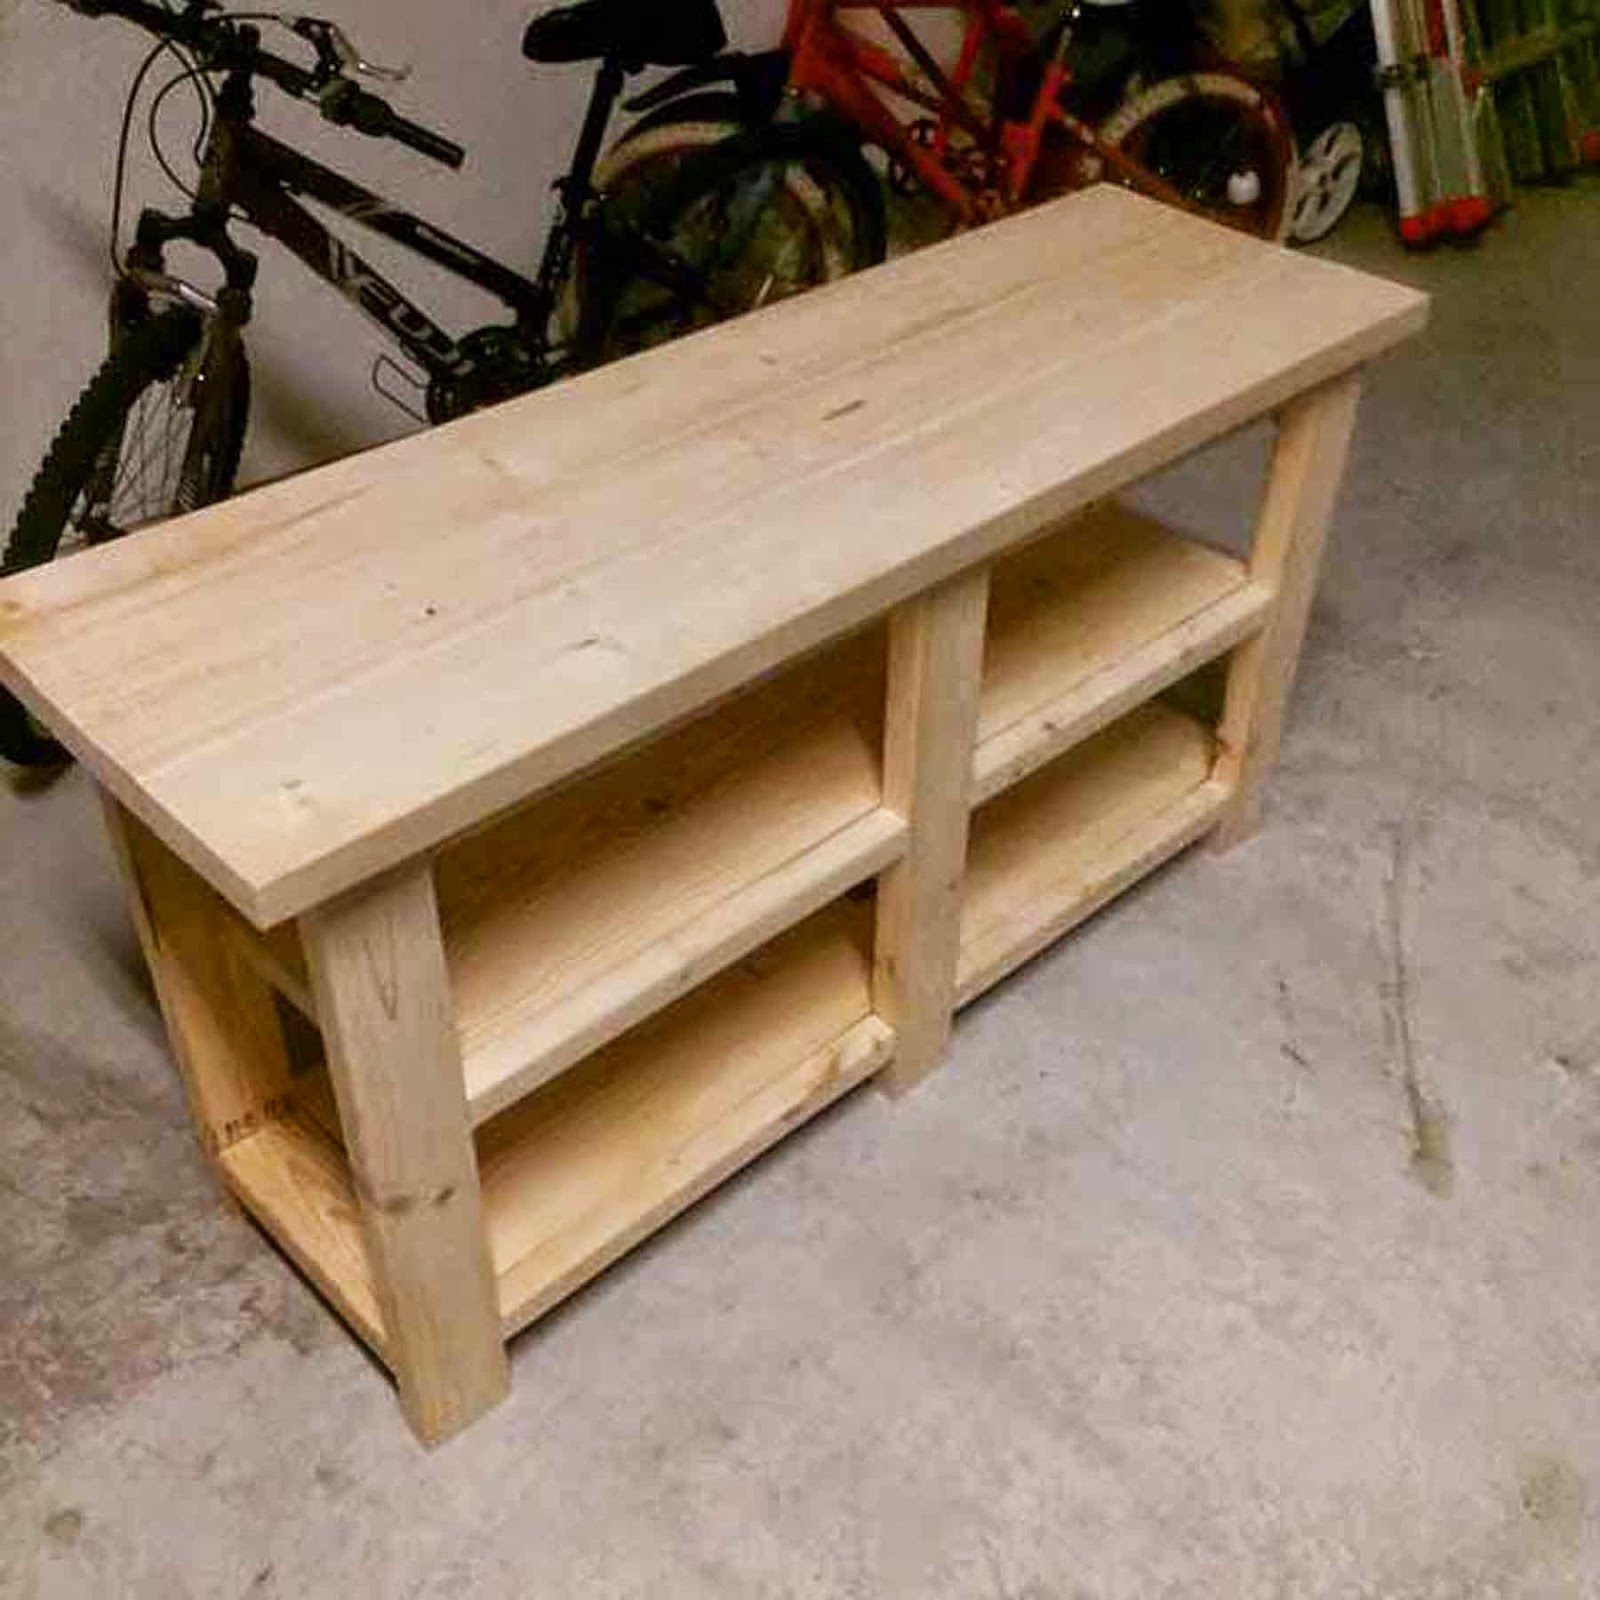 How to make a sofa table from 1 x 6 lumber - I Built Something Out Of Wood Sofa Table Diy